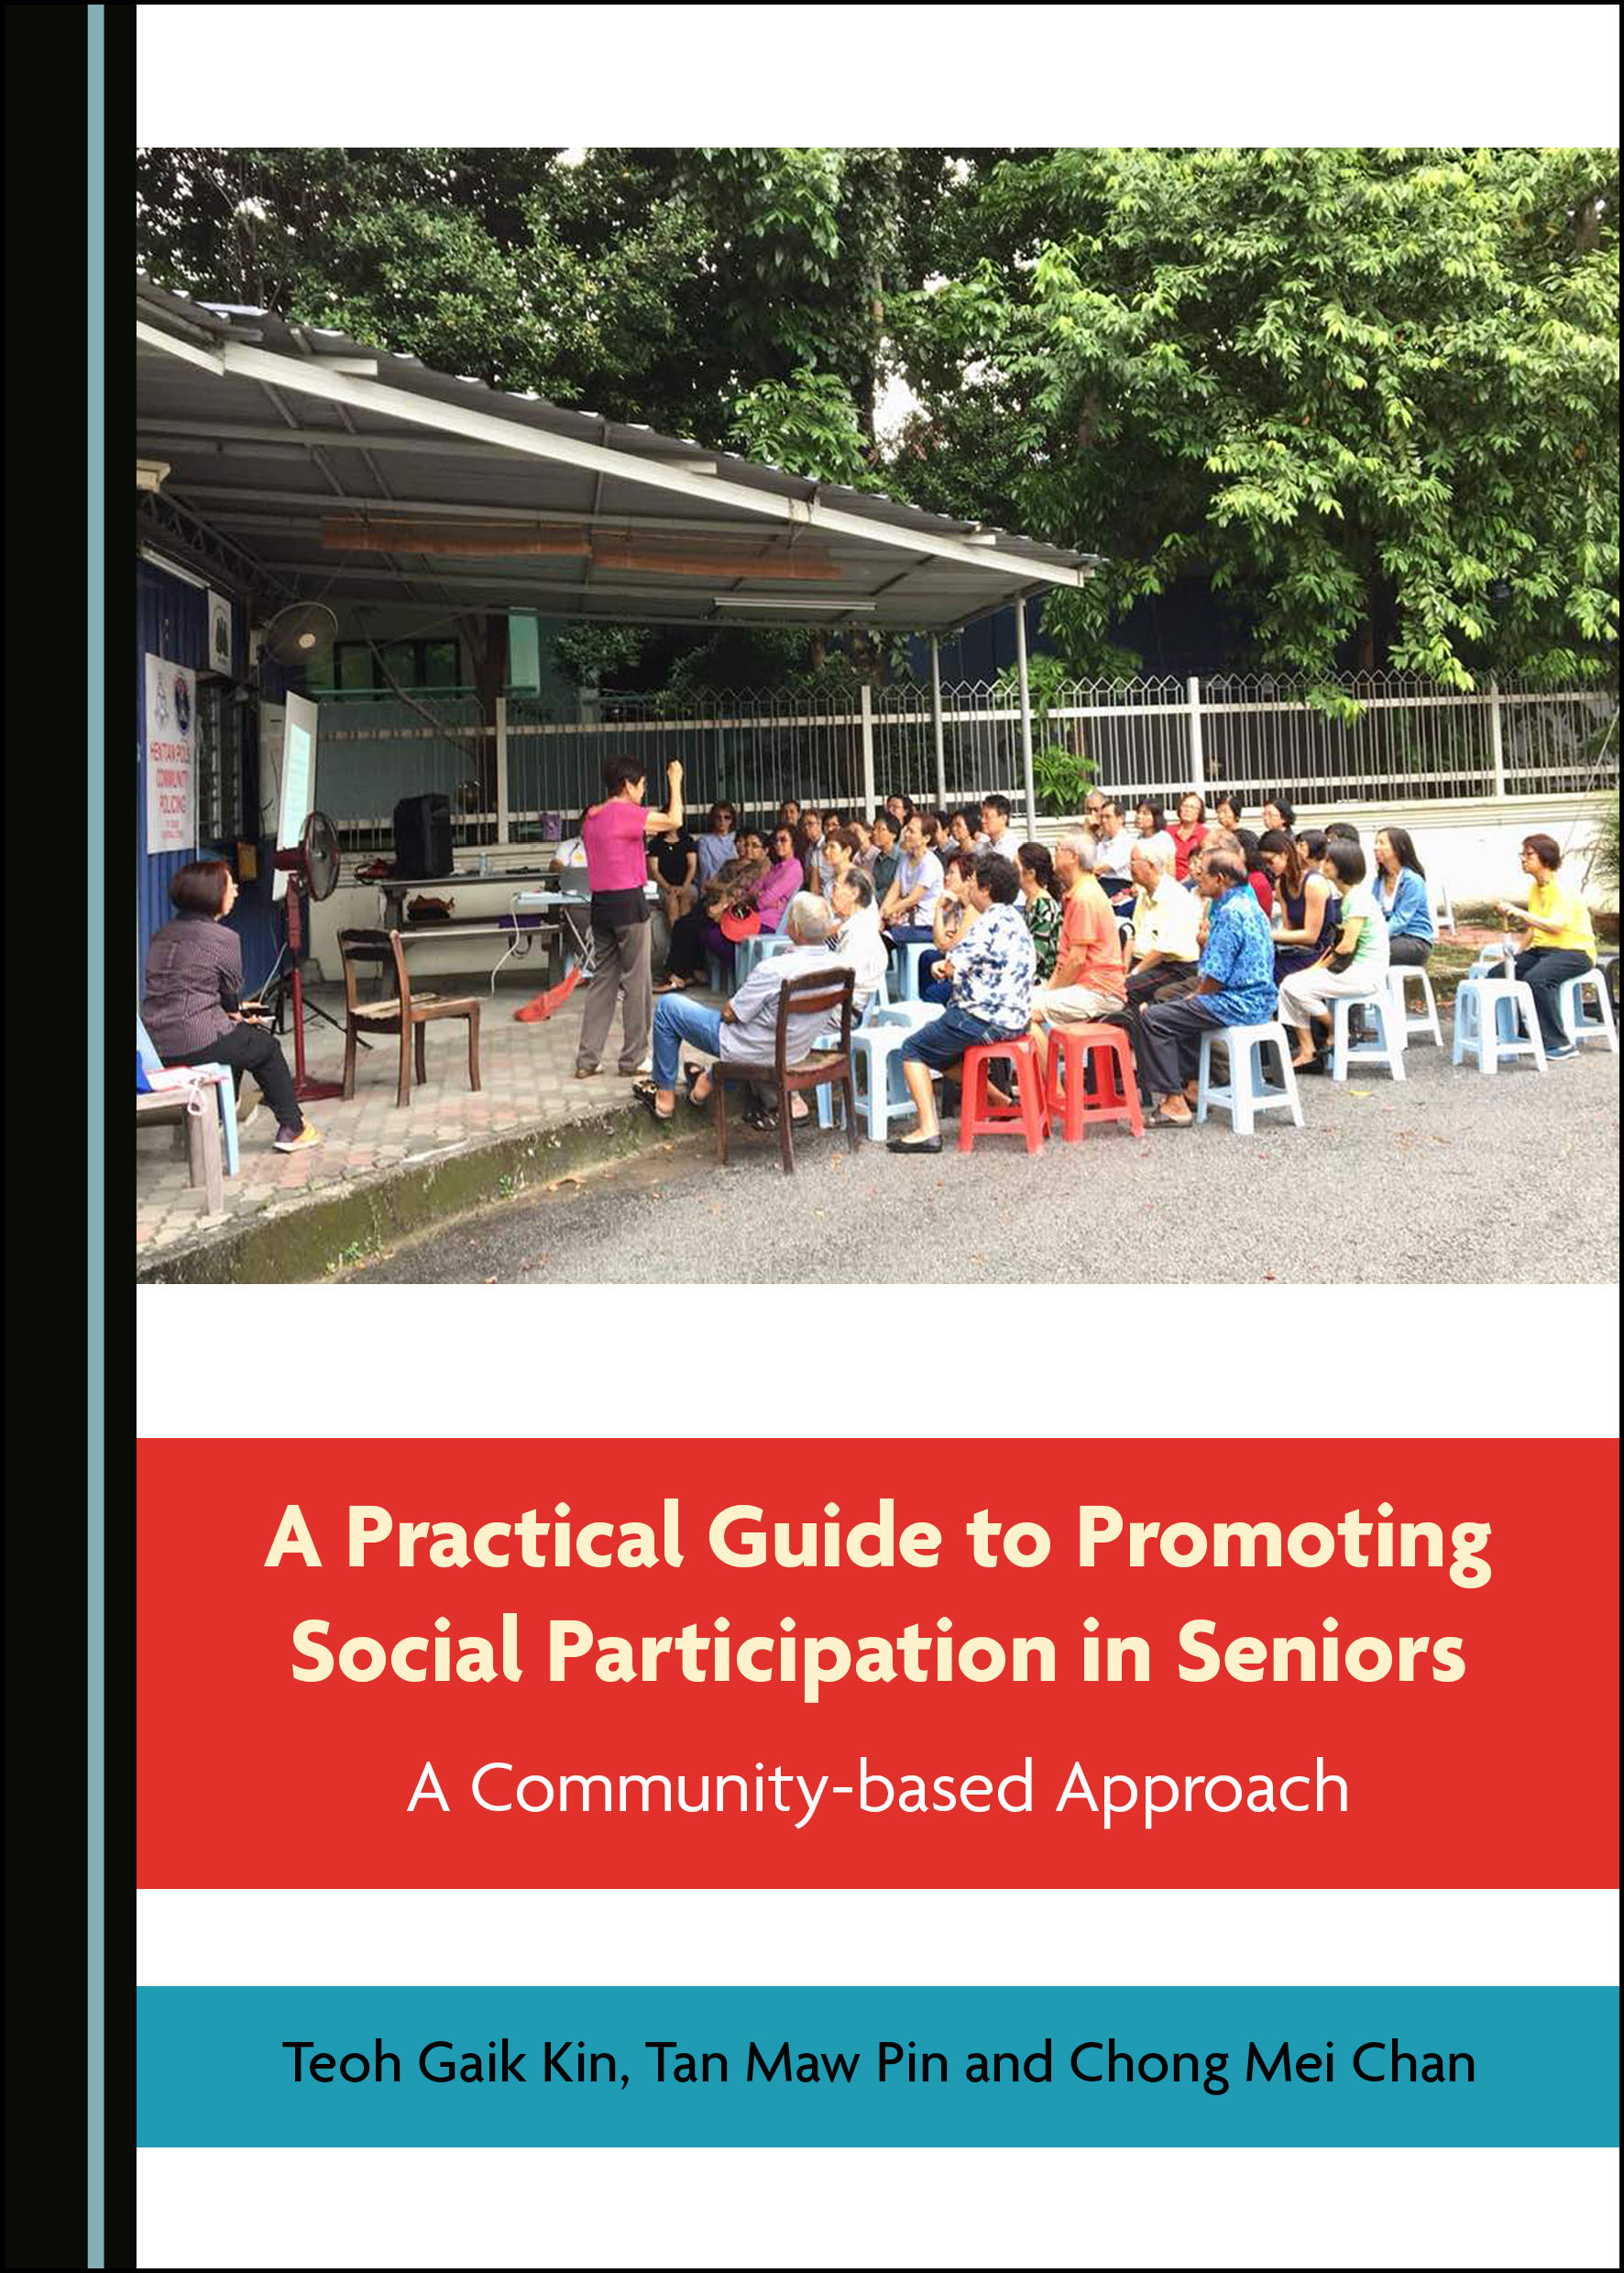 A Practical Guide to Promoting Social Participation in Seniors: A Community-based Approach